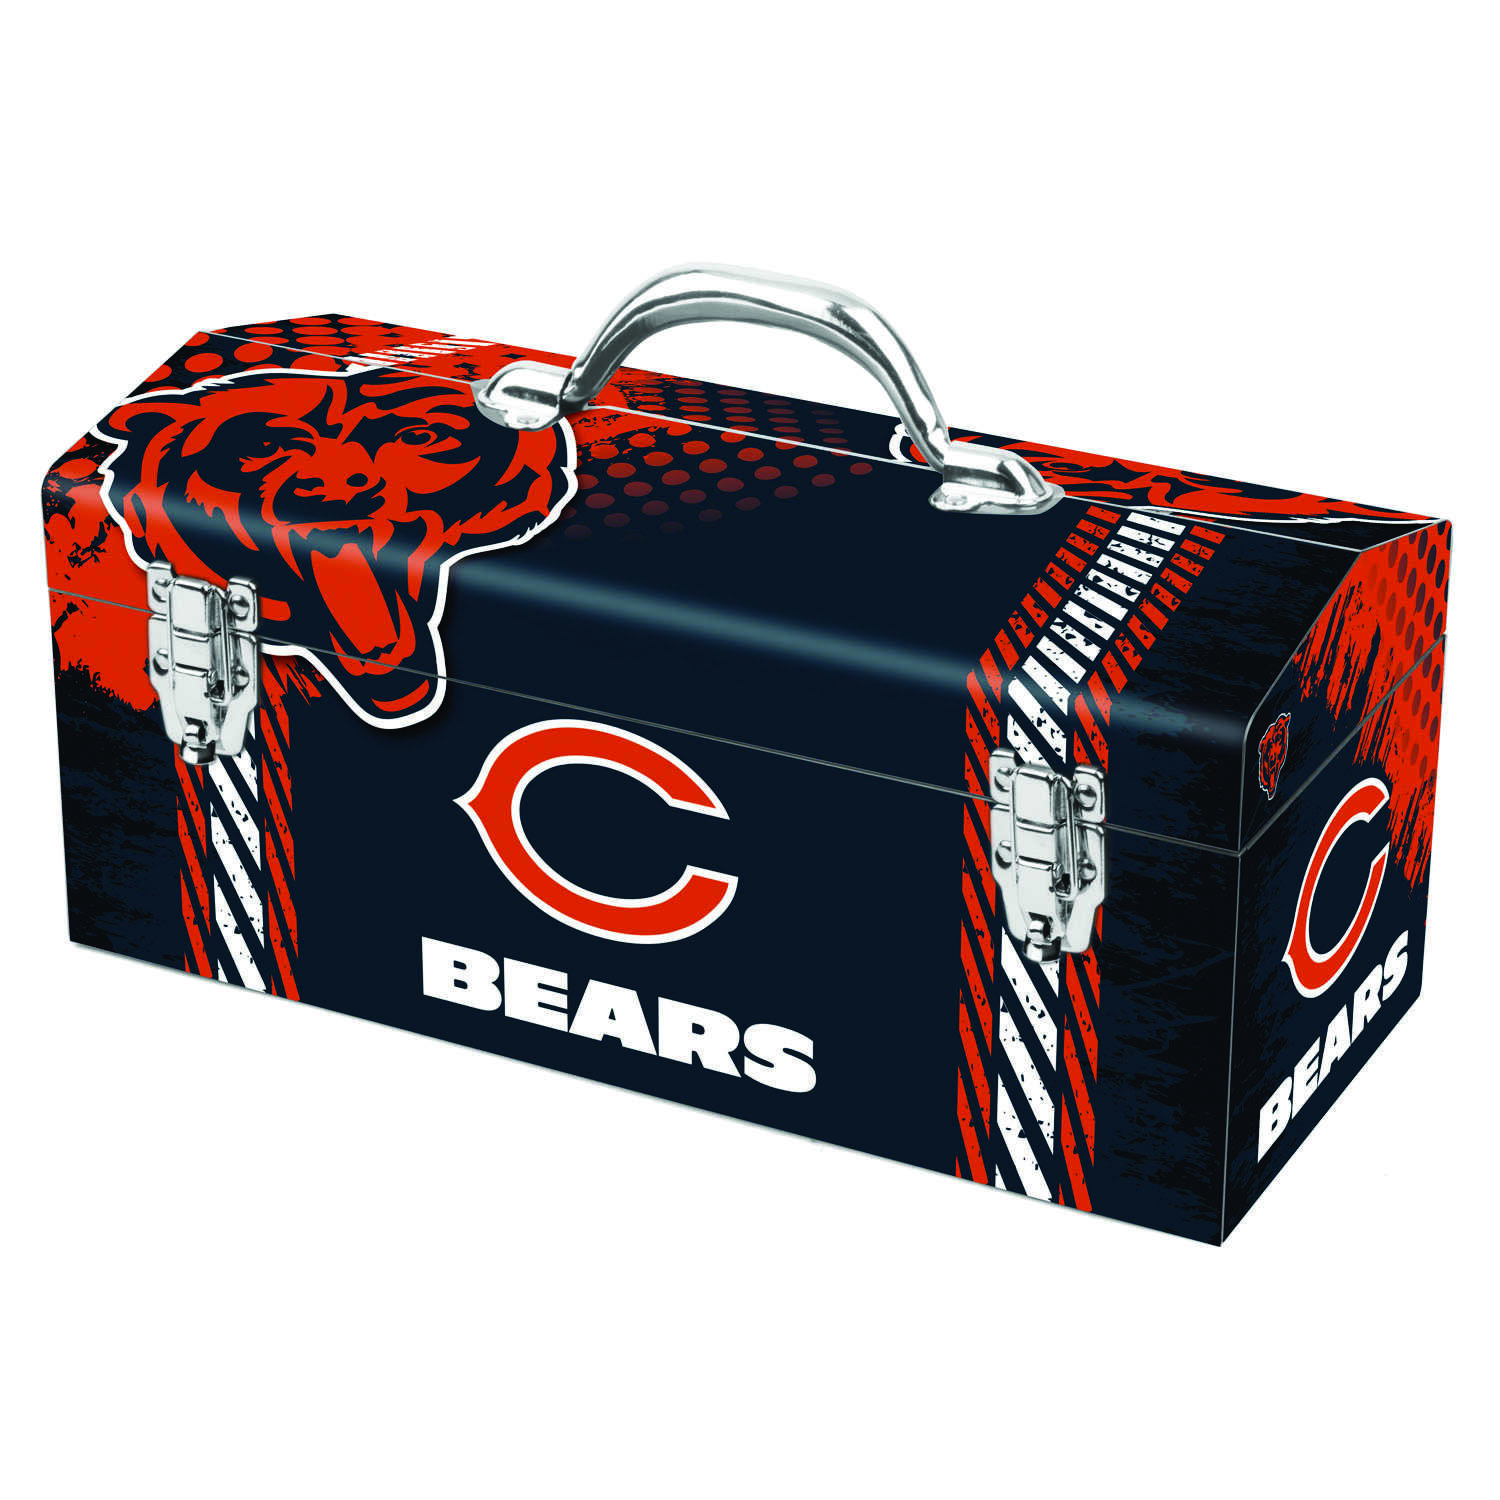 Sainty International  16.25 in. Steel  Chicago Bears  Art Deco Tool Box  7.1 in. W x 7.75 in. H